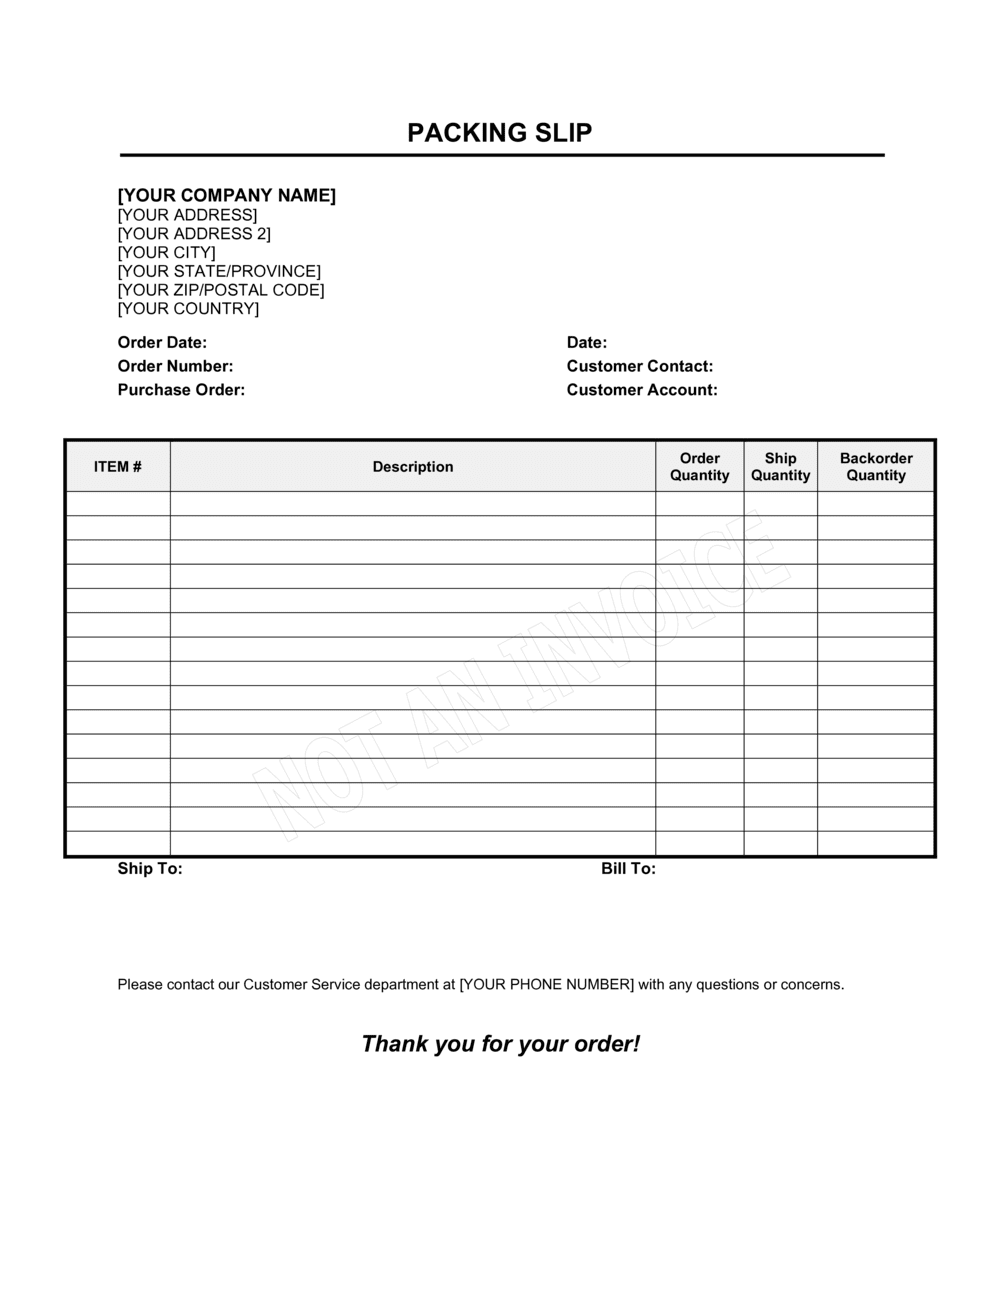 Business-in-a-Box's Packing Slip Template